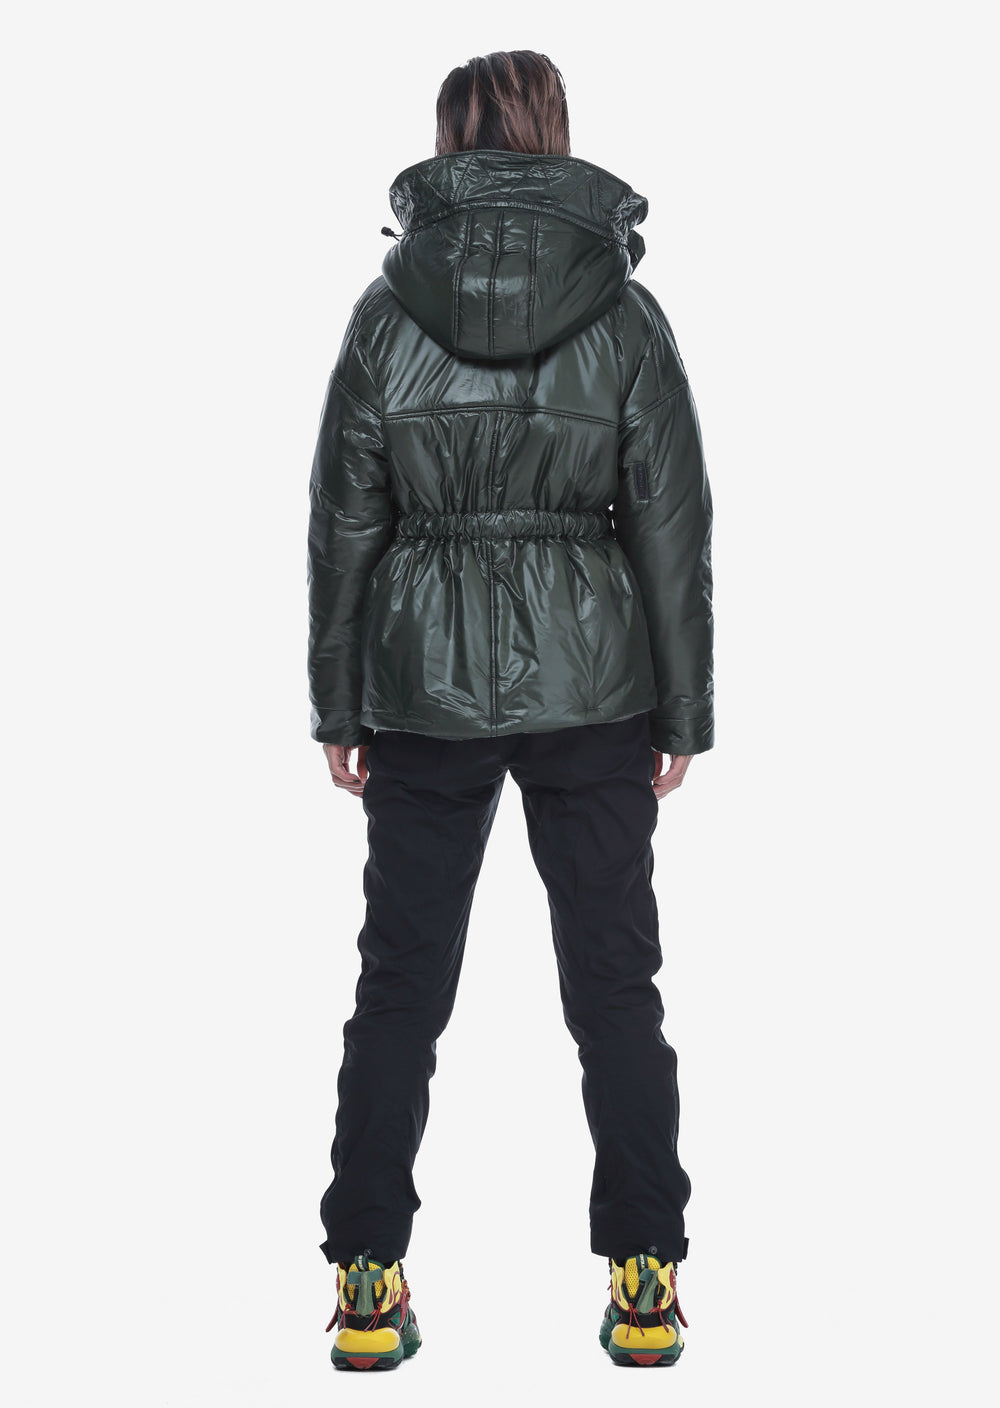 Removable Hood Padded Jacket Qw260-5 LARSEN